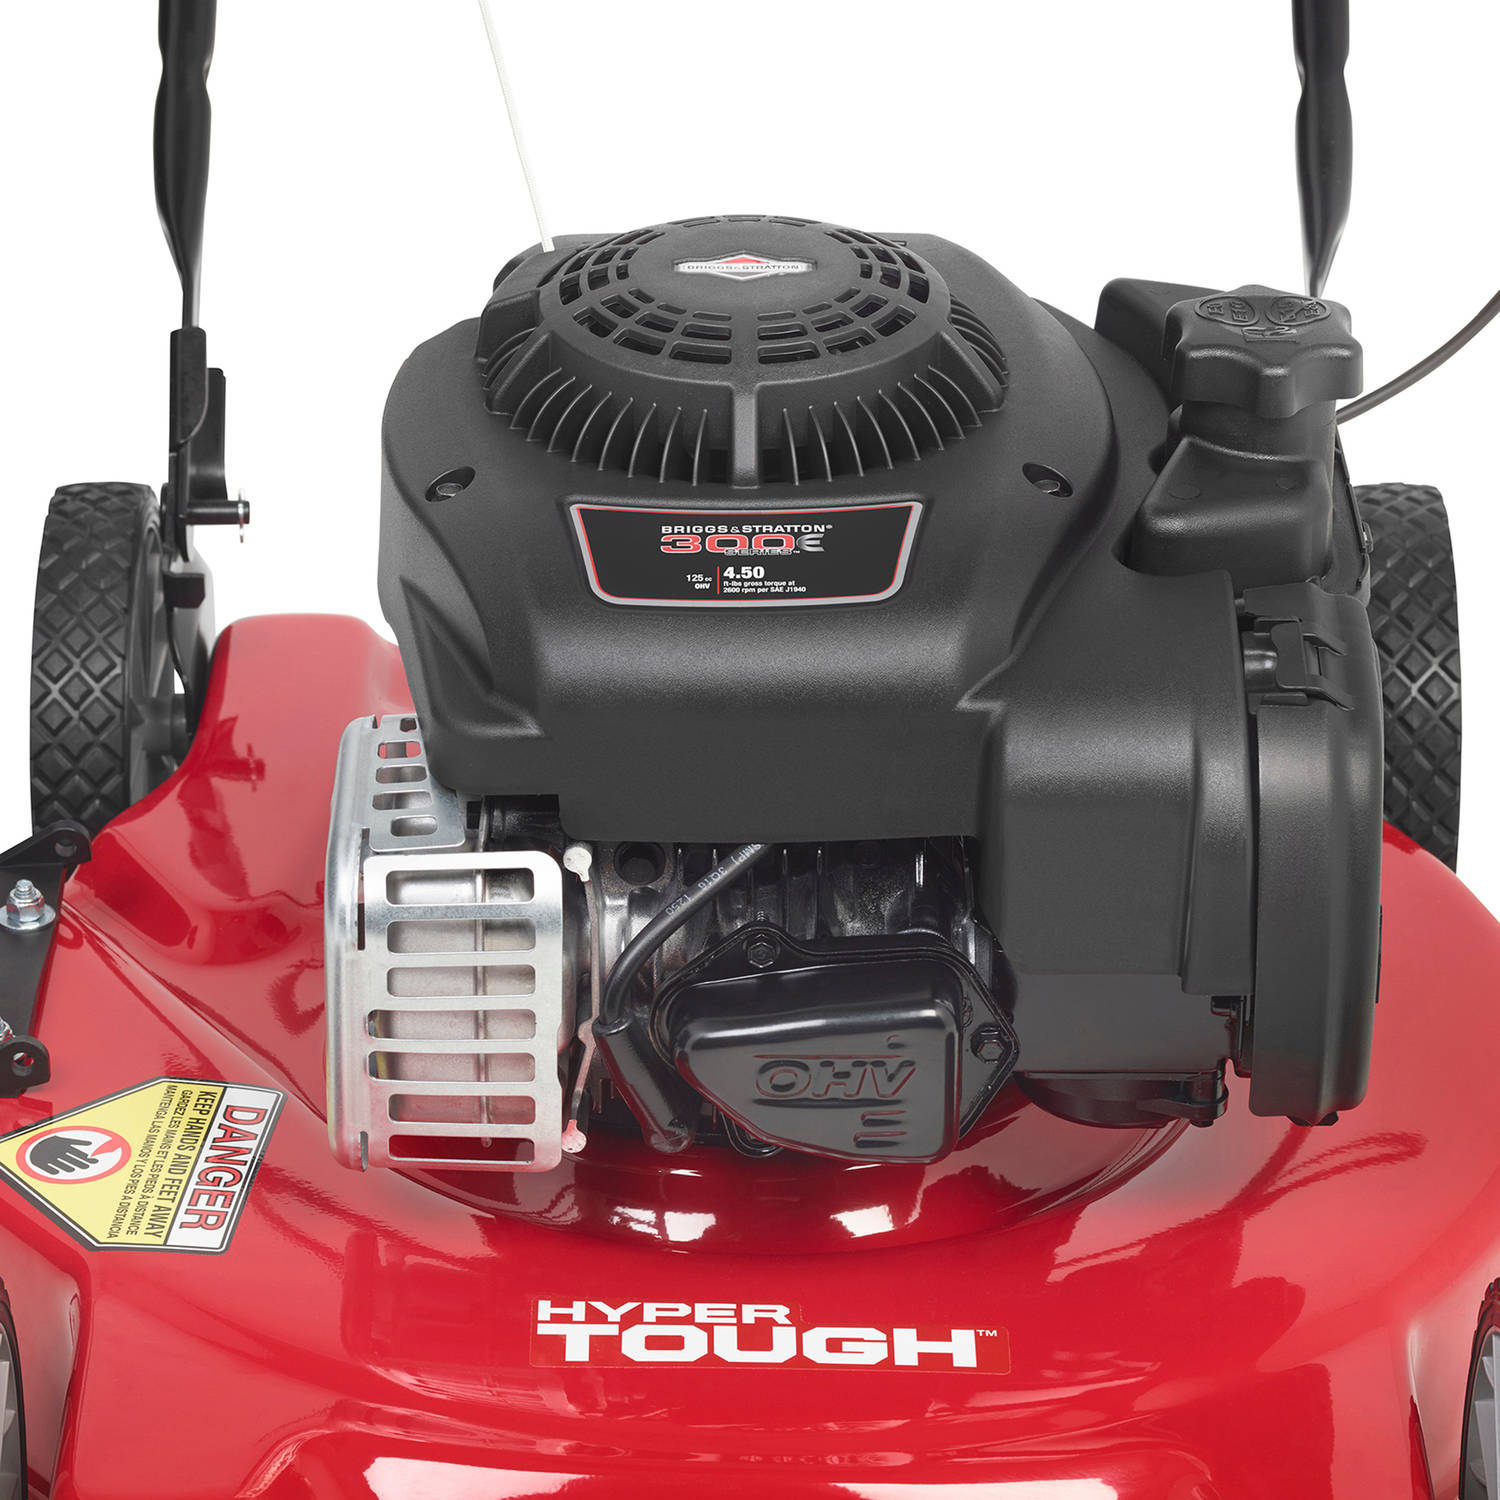 Hyper Tough 20 Quot Gas Powered Side Discharge Lawn Mower Ebay